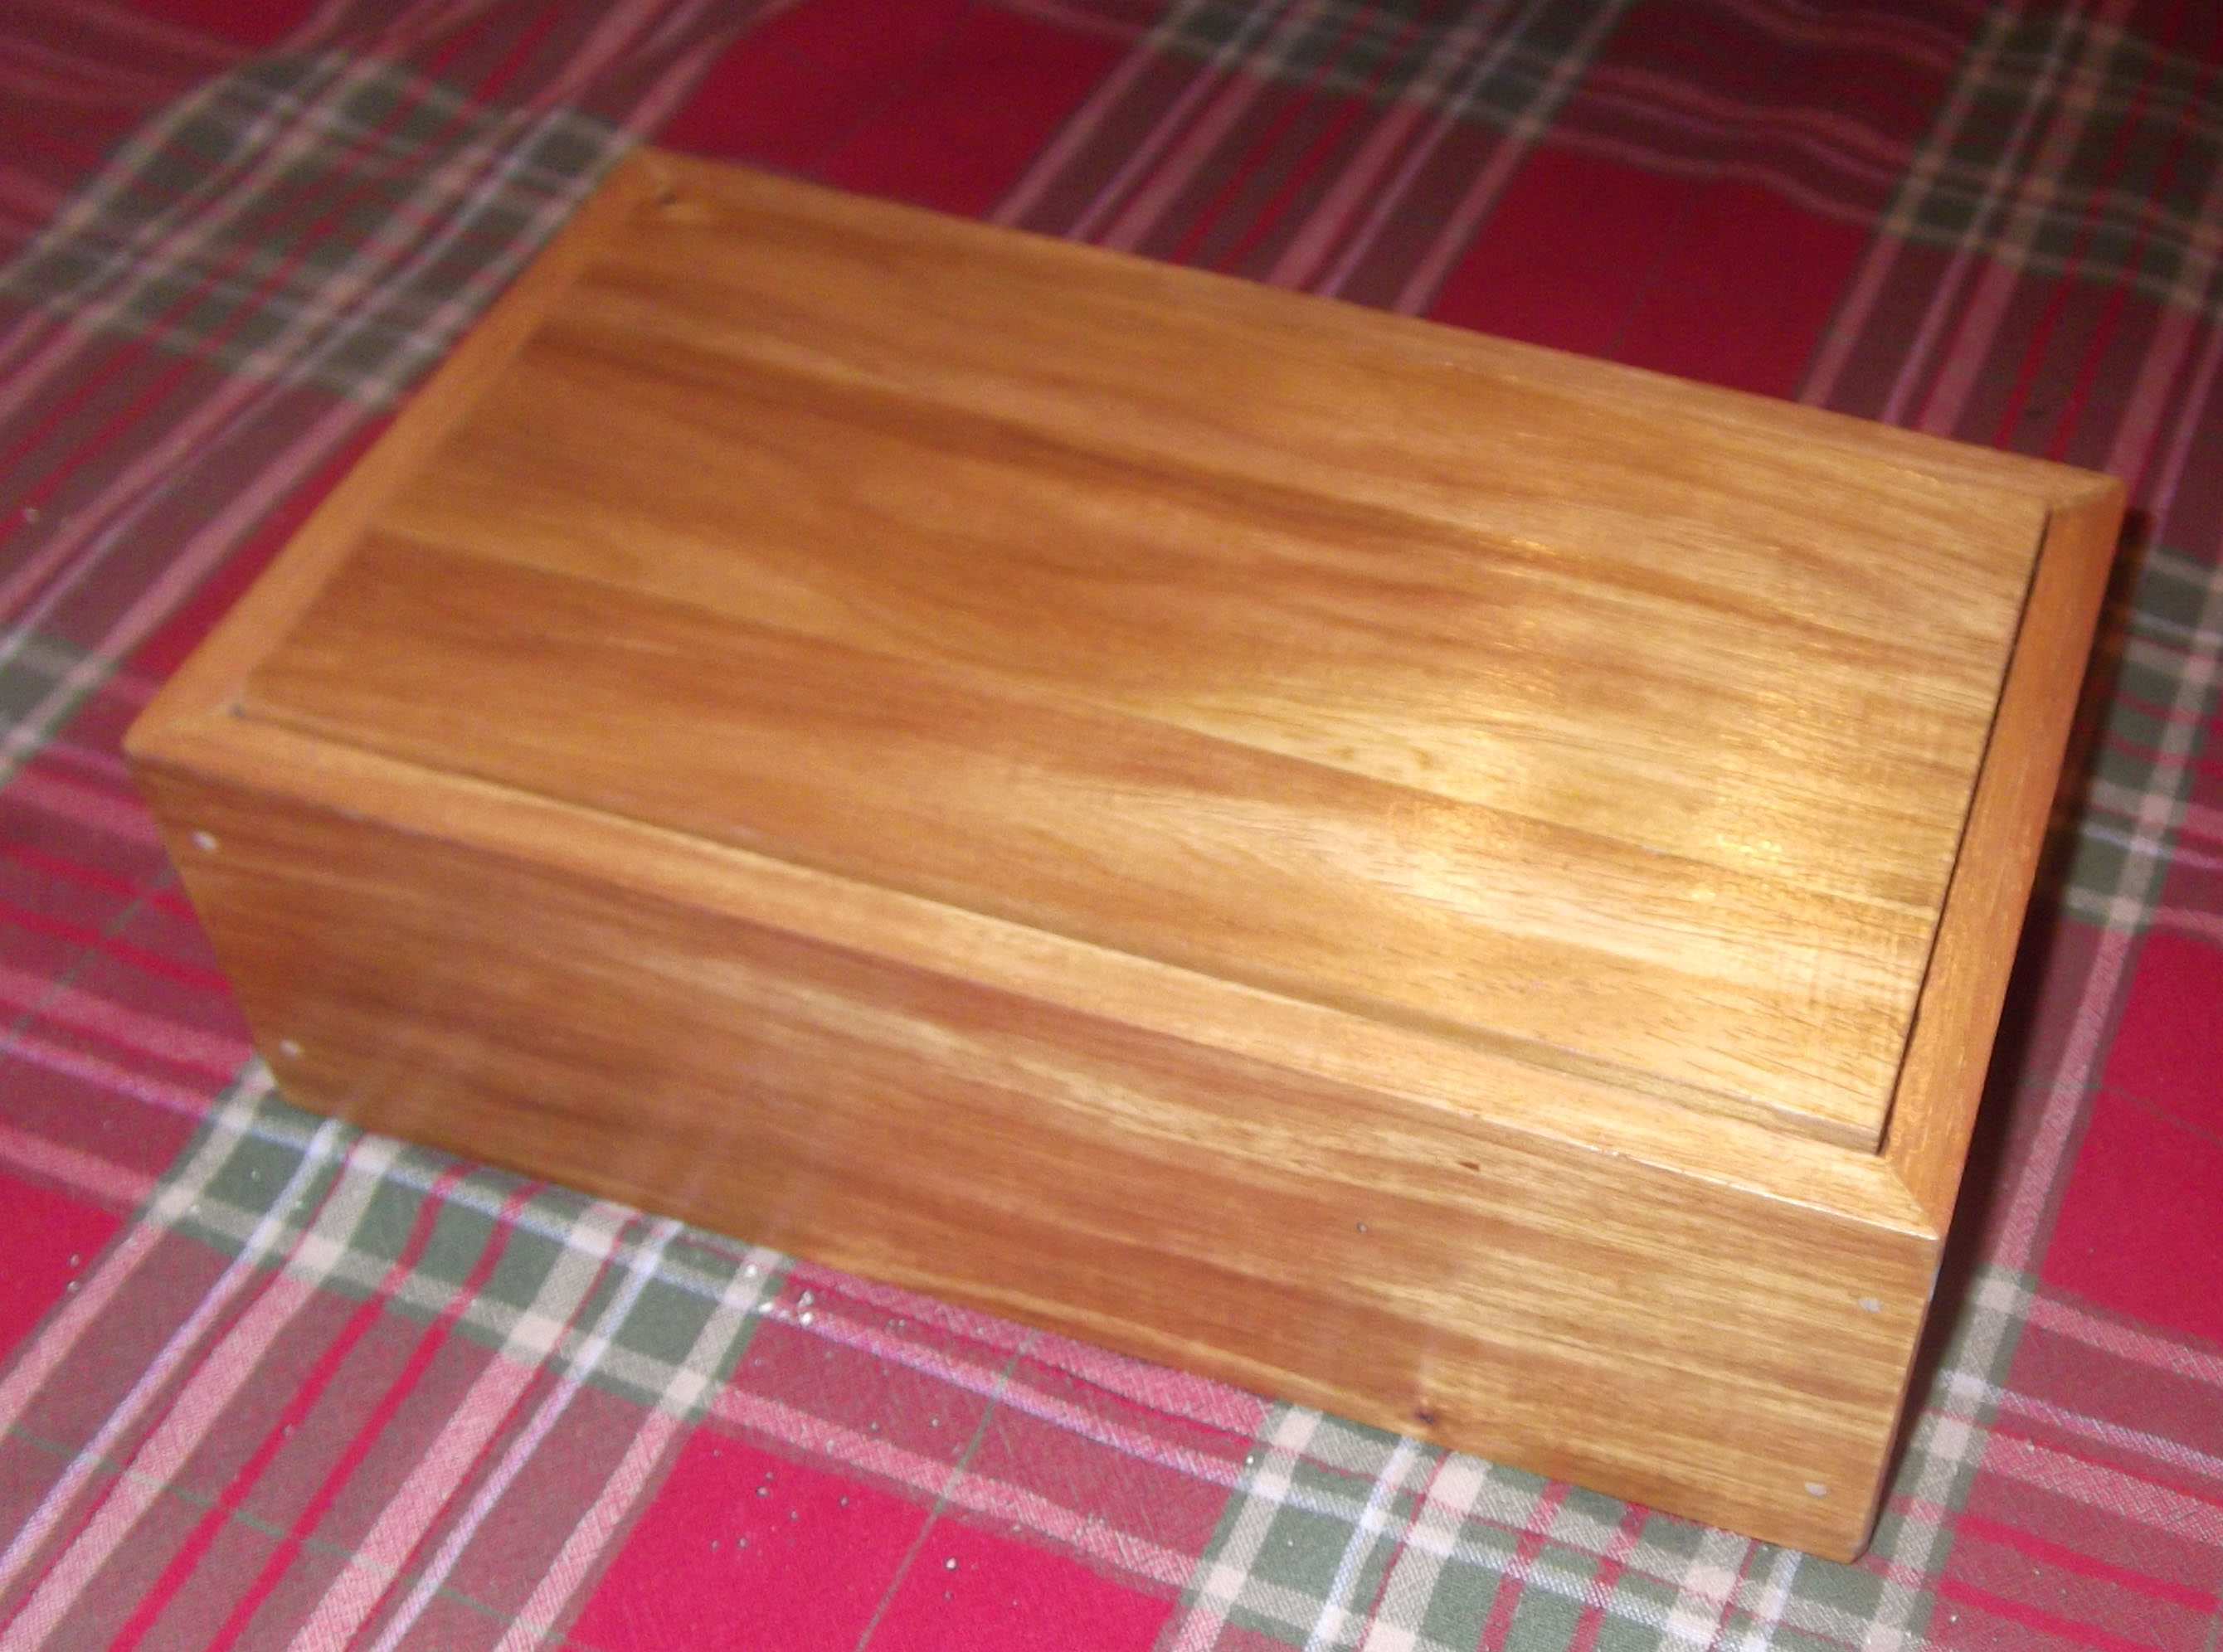 Narra Wood Jewelry Box